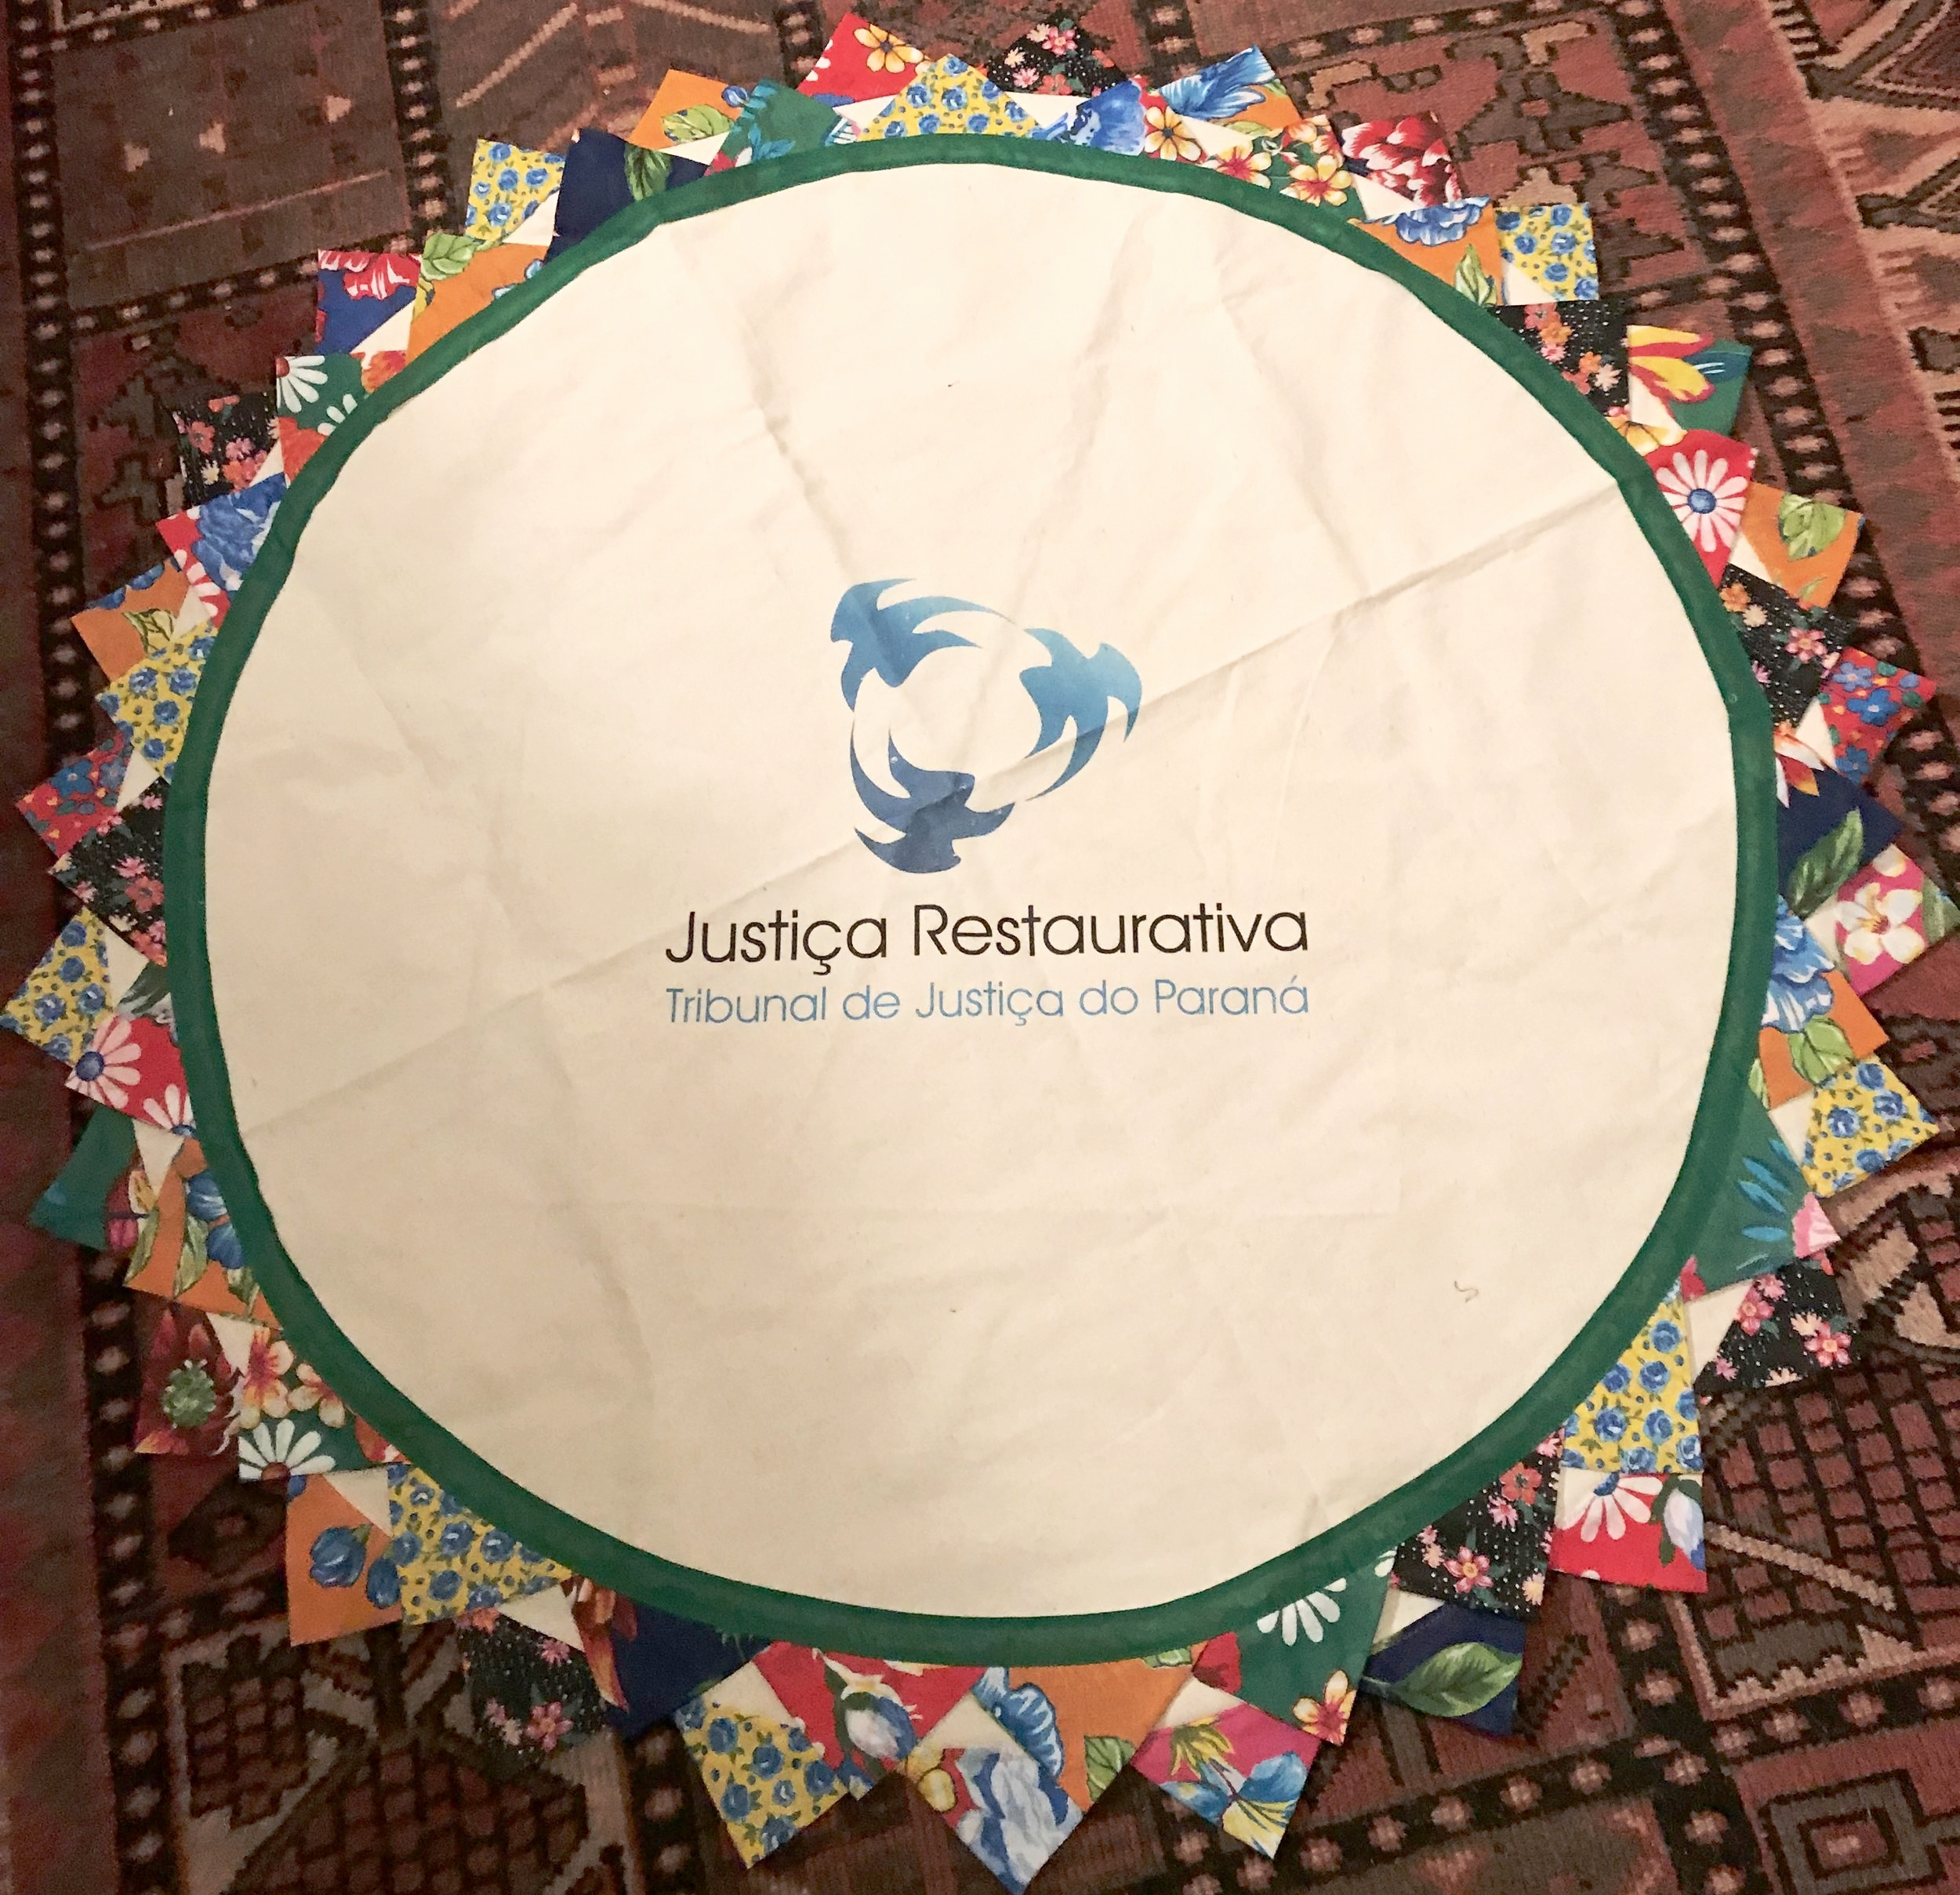 Certainly, a highlight of the morning was a beautiful gift from Jurema Carolina Gomez, representing Tribunal de Justica Restaurative. The handcrafted circle cloth includes their signature,a design depicting restorative justice in the center.